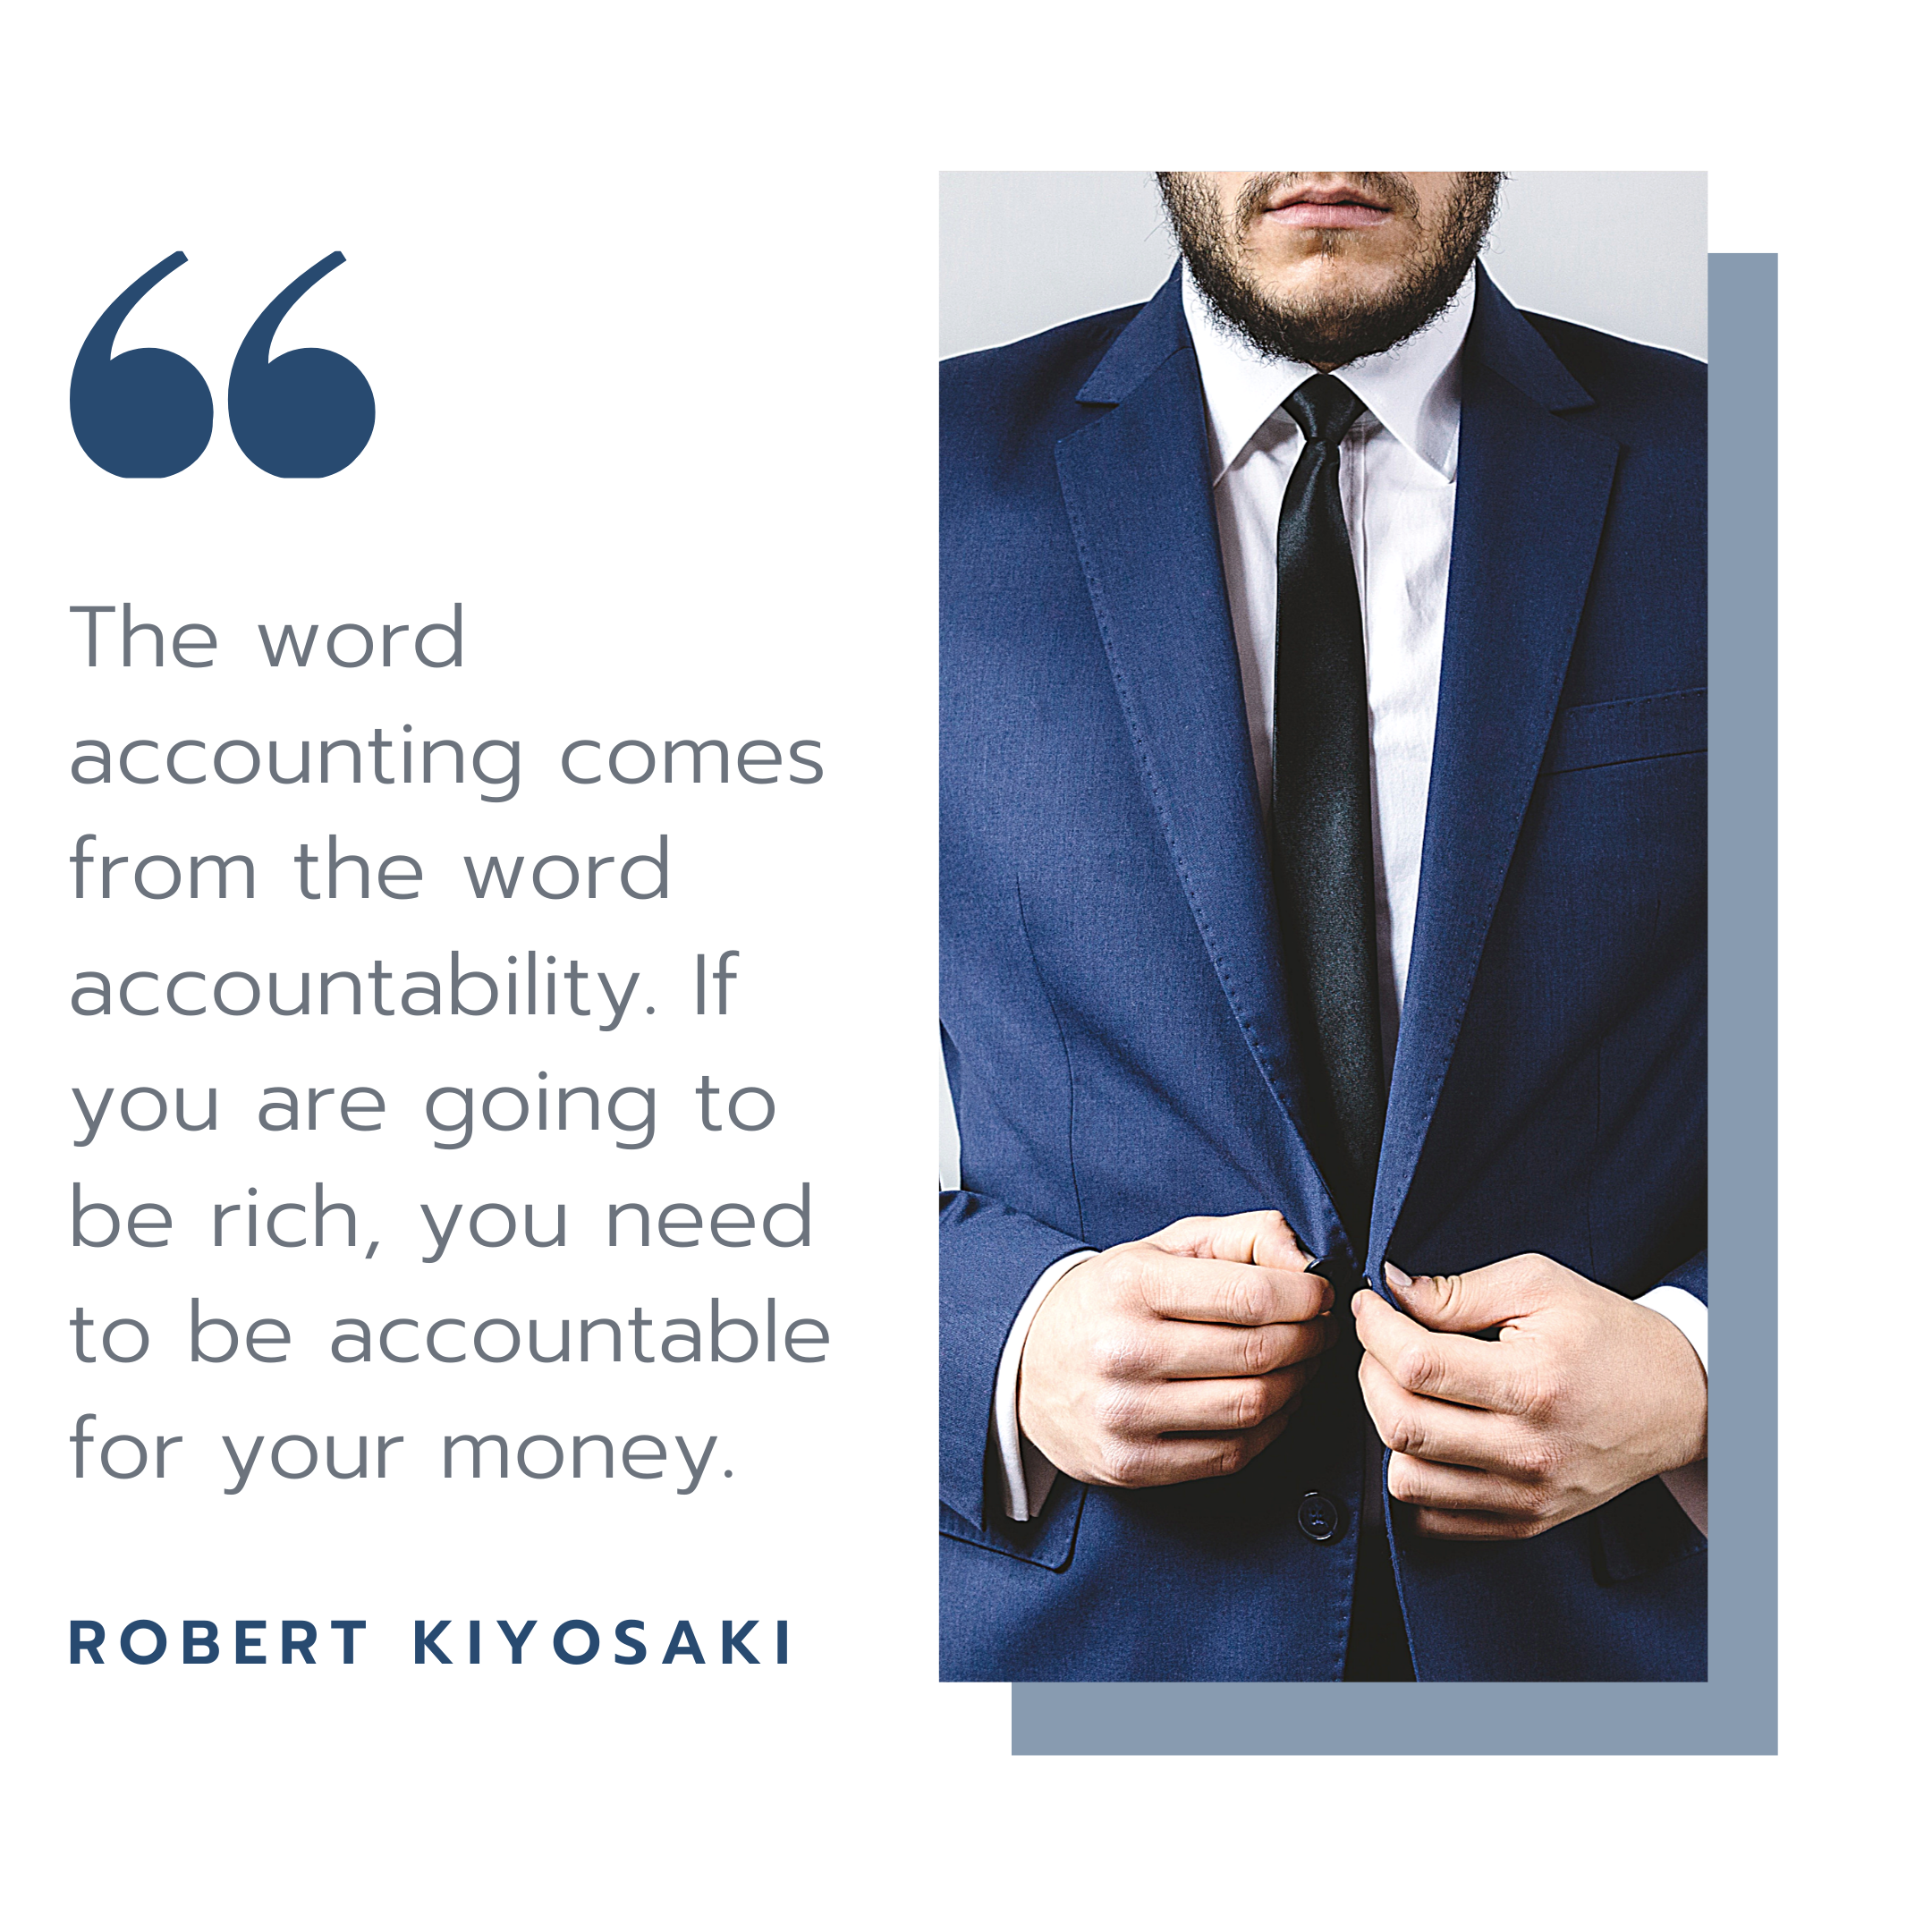 """A quote from American businessman Robert Kiyosaki on the importance of bookkeeping. The quote reads, """"The word accounting comes from the word accountability. If you're going to be rich, you need to be accountable for your money."""""""